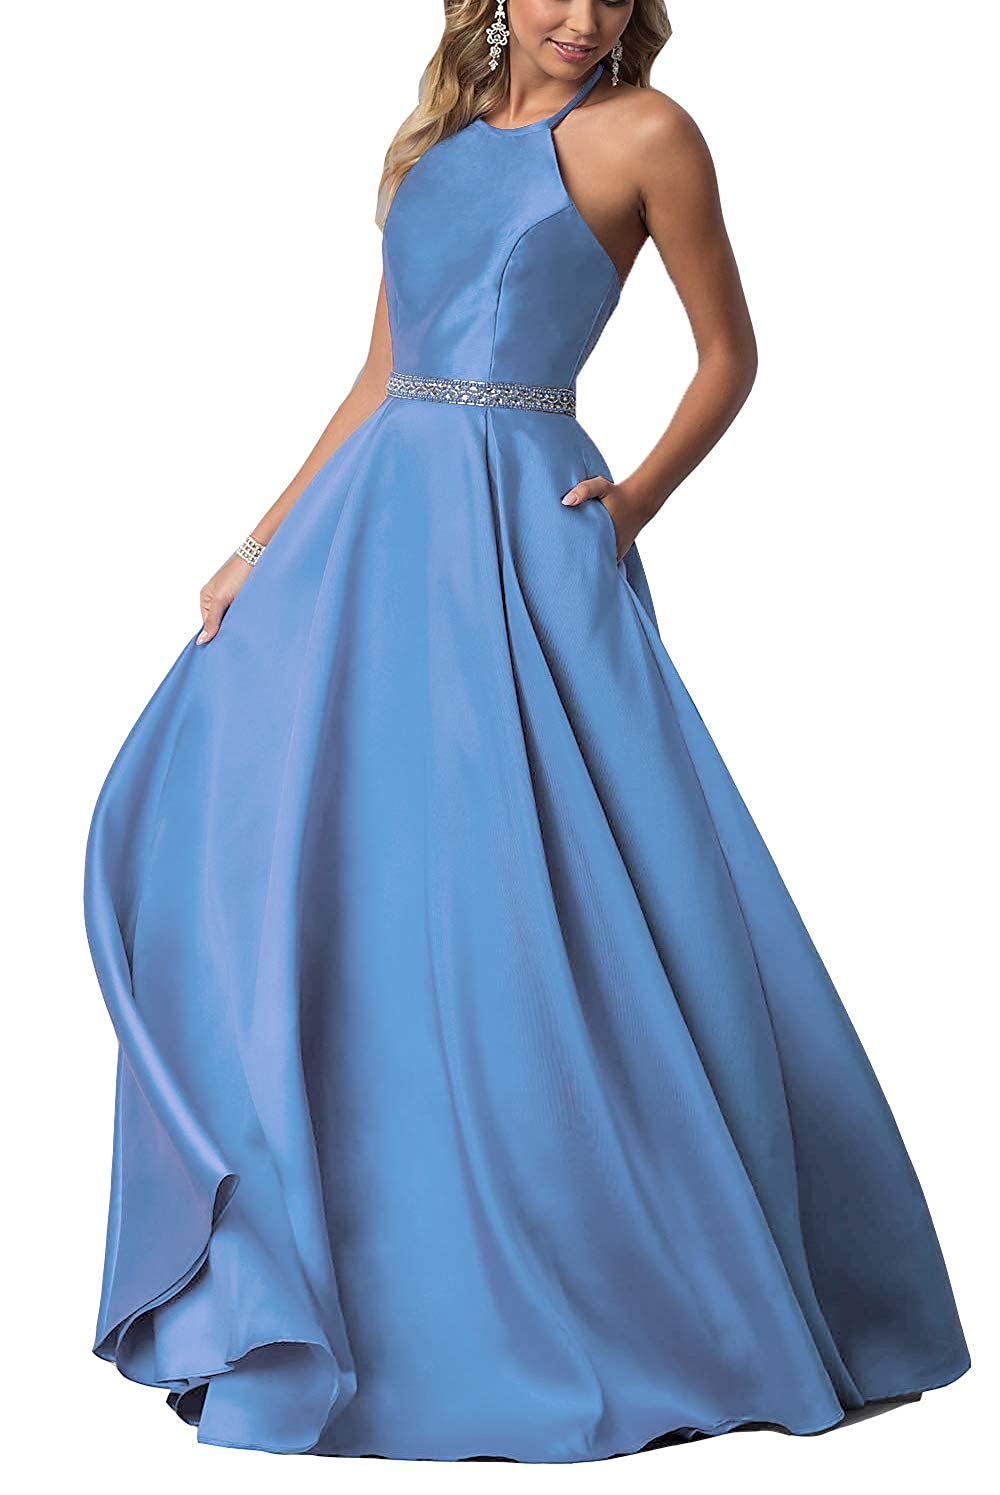 Slate bluee YMSHA Women's Halter Prom Dresses with Pockets Long Satin Crystal Evening Formal Gown O38PM